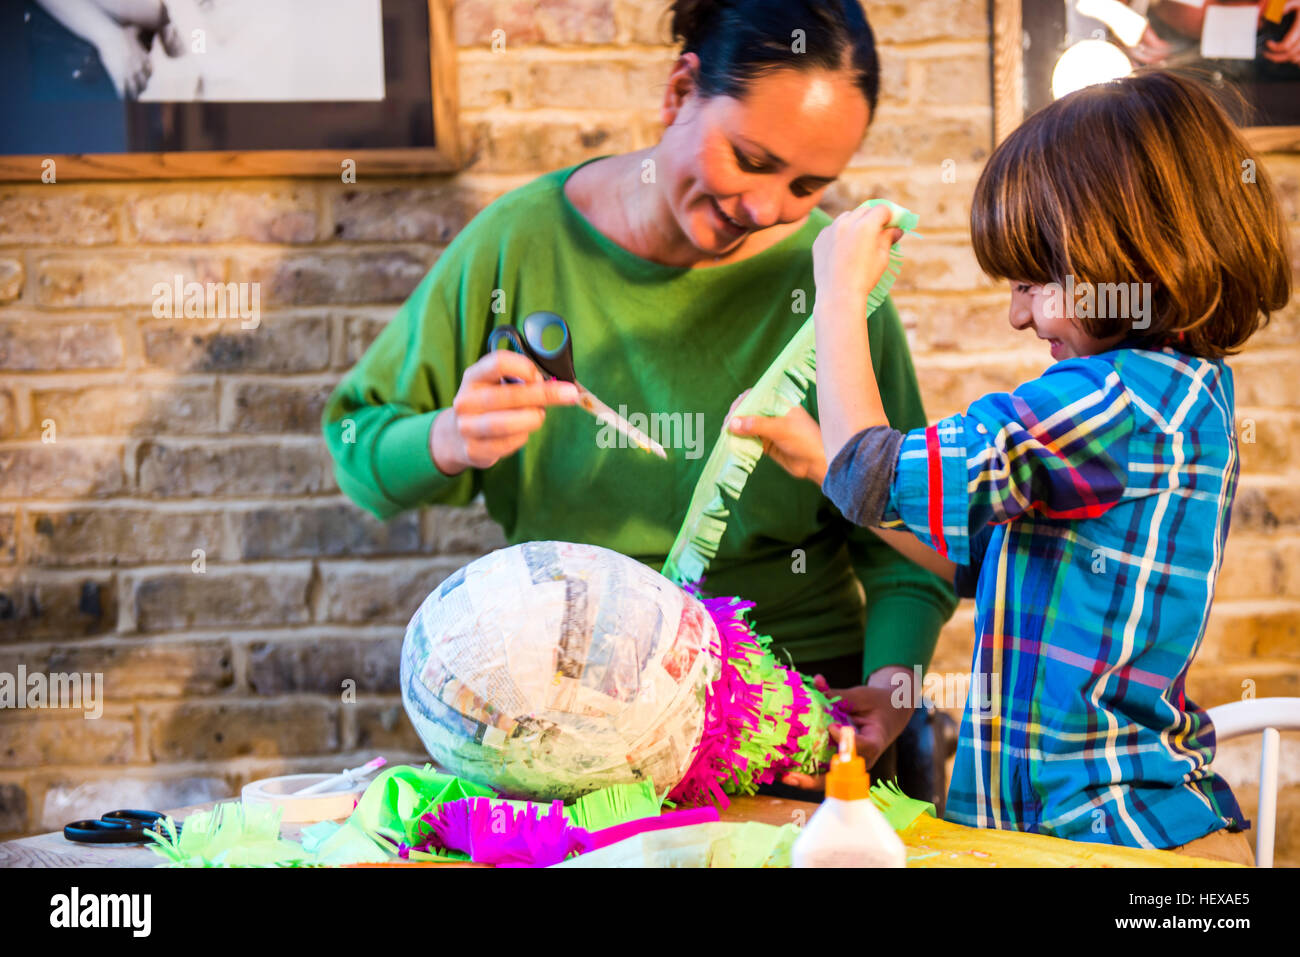 Mother and son decorating pinata at home - Stock Image